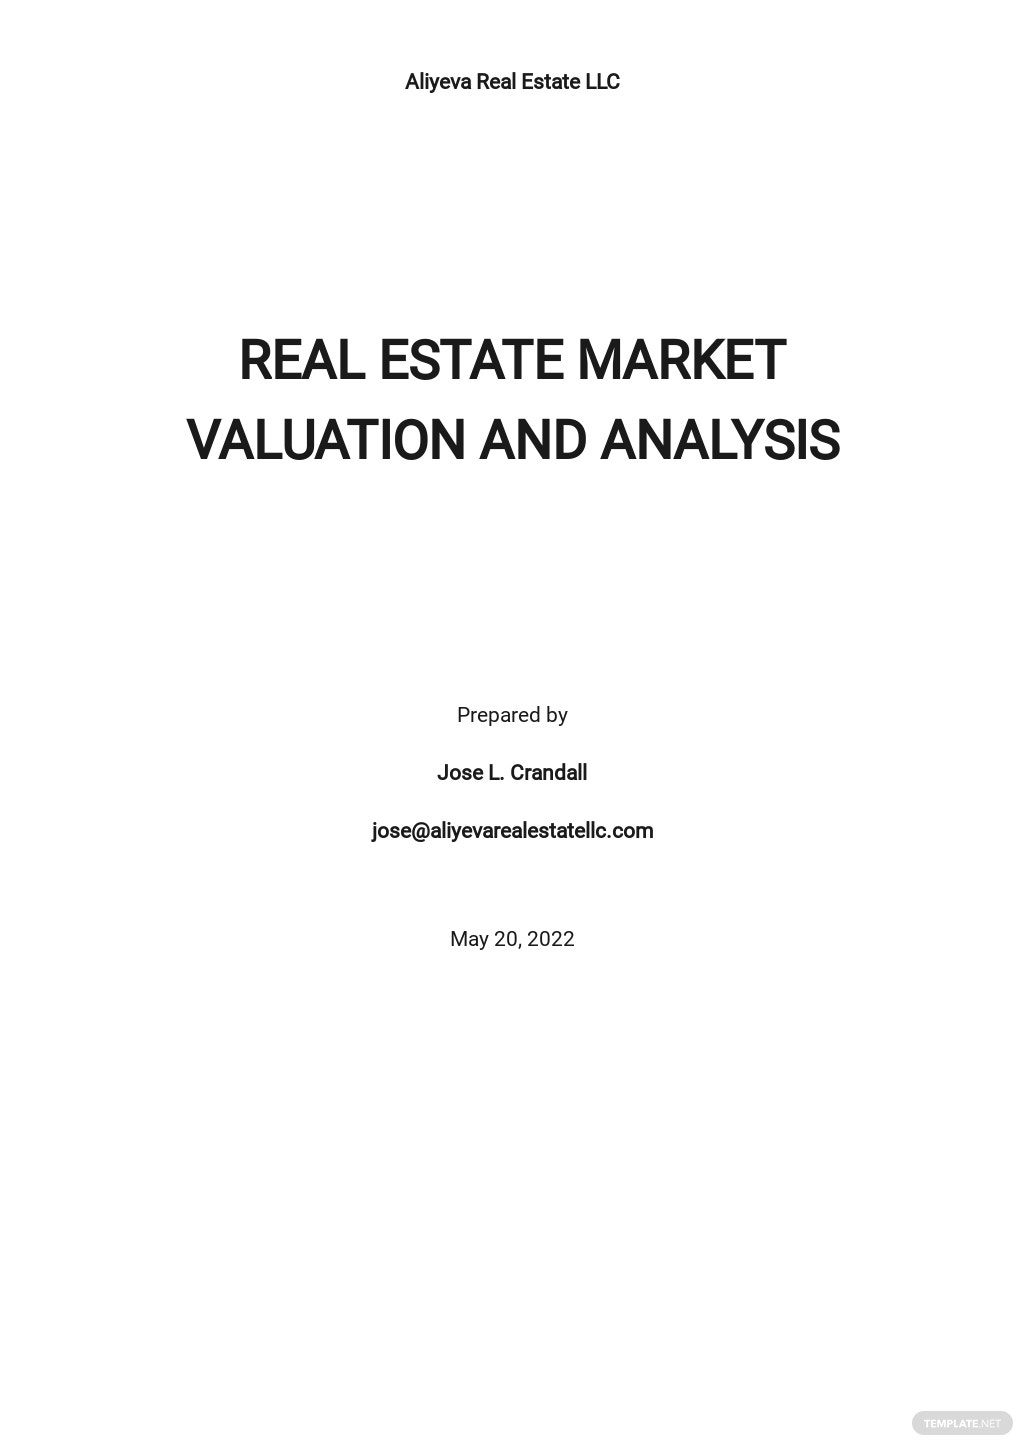 Real Estate Market Valuation and Analysis Template.jpe